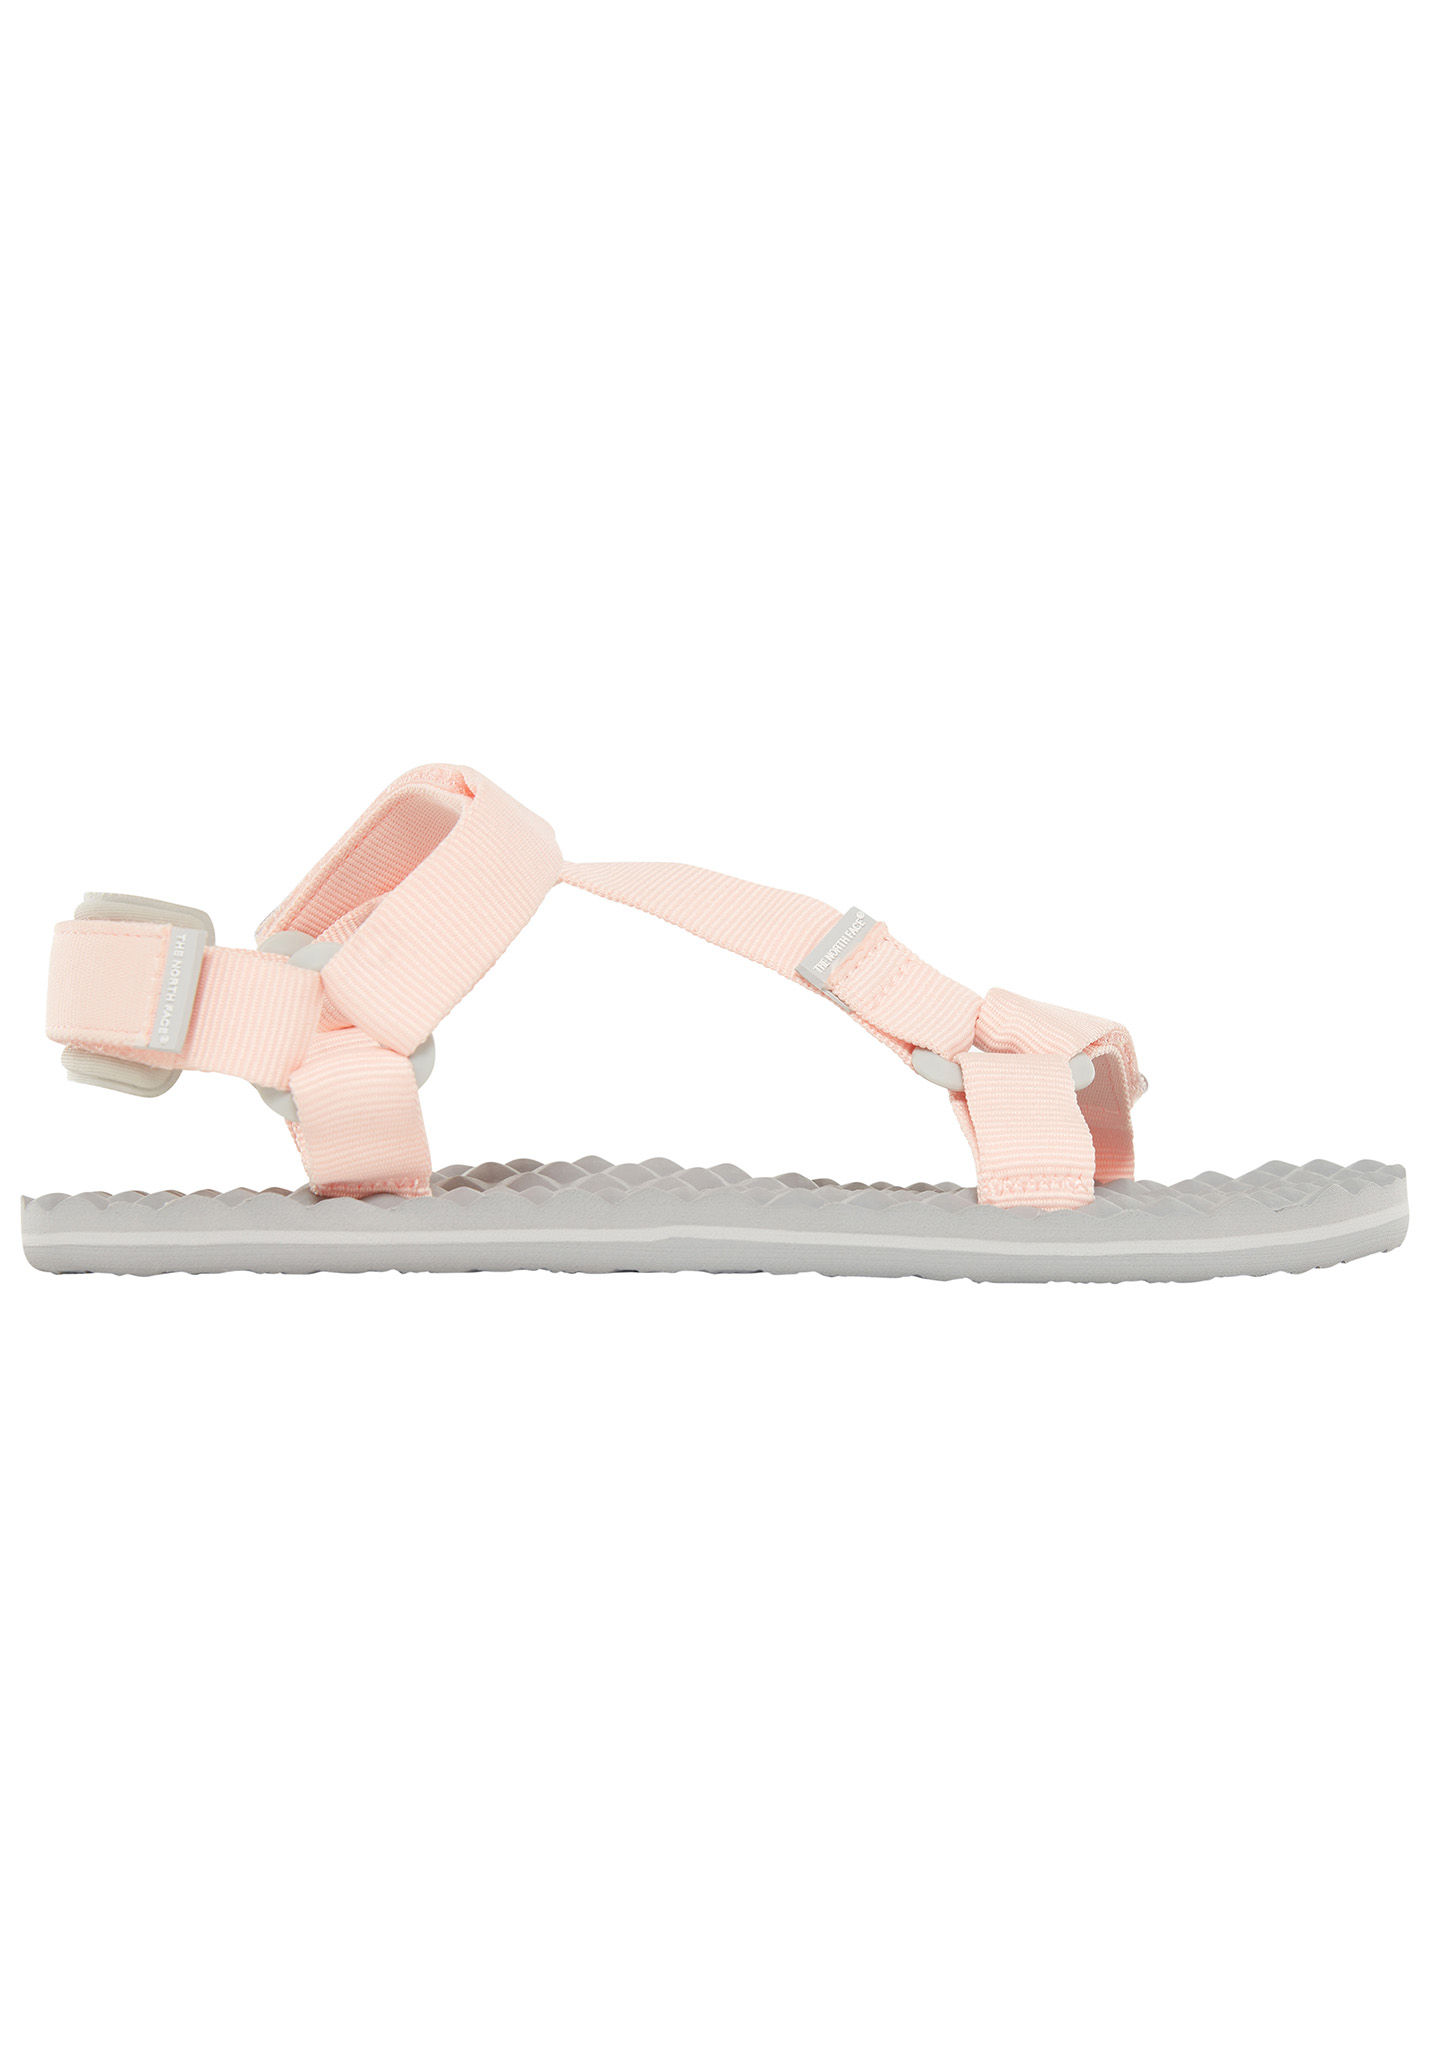 4e22d91ccf6 THE NORTH FACE Base Camp Switchback - Tongs pour Femme - Rose - Planet  Sports